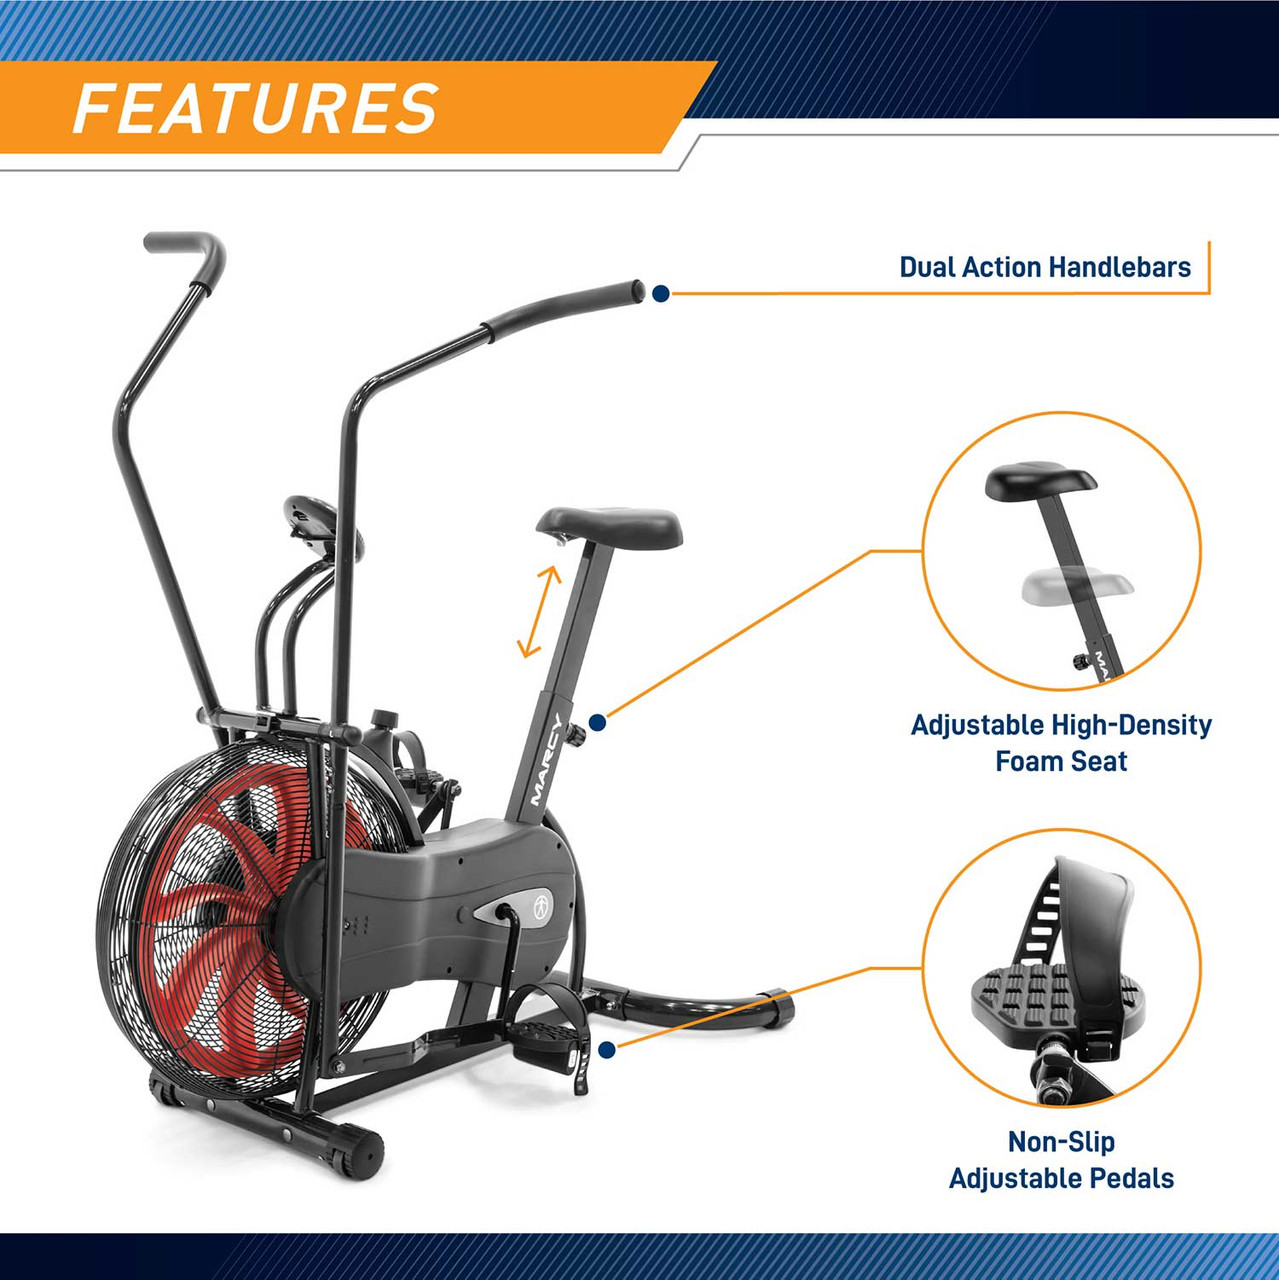 The Marcy Fan Bike NS-1000 has ergonomic handles made with comfort in mind